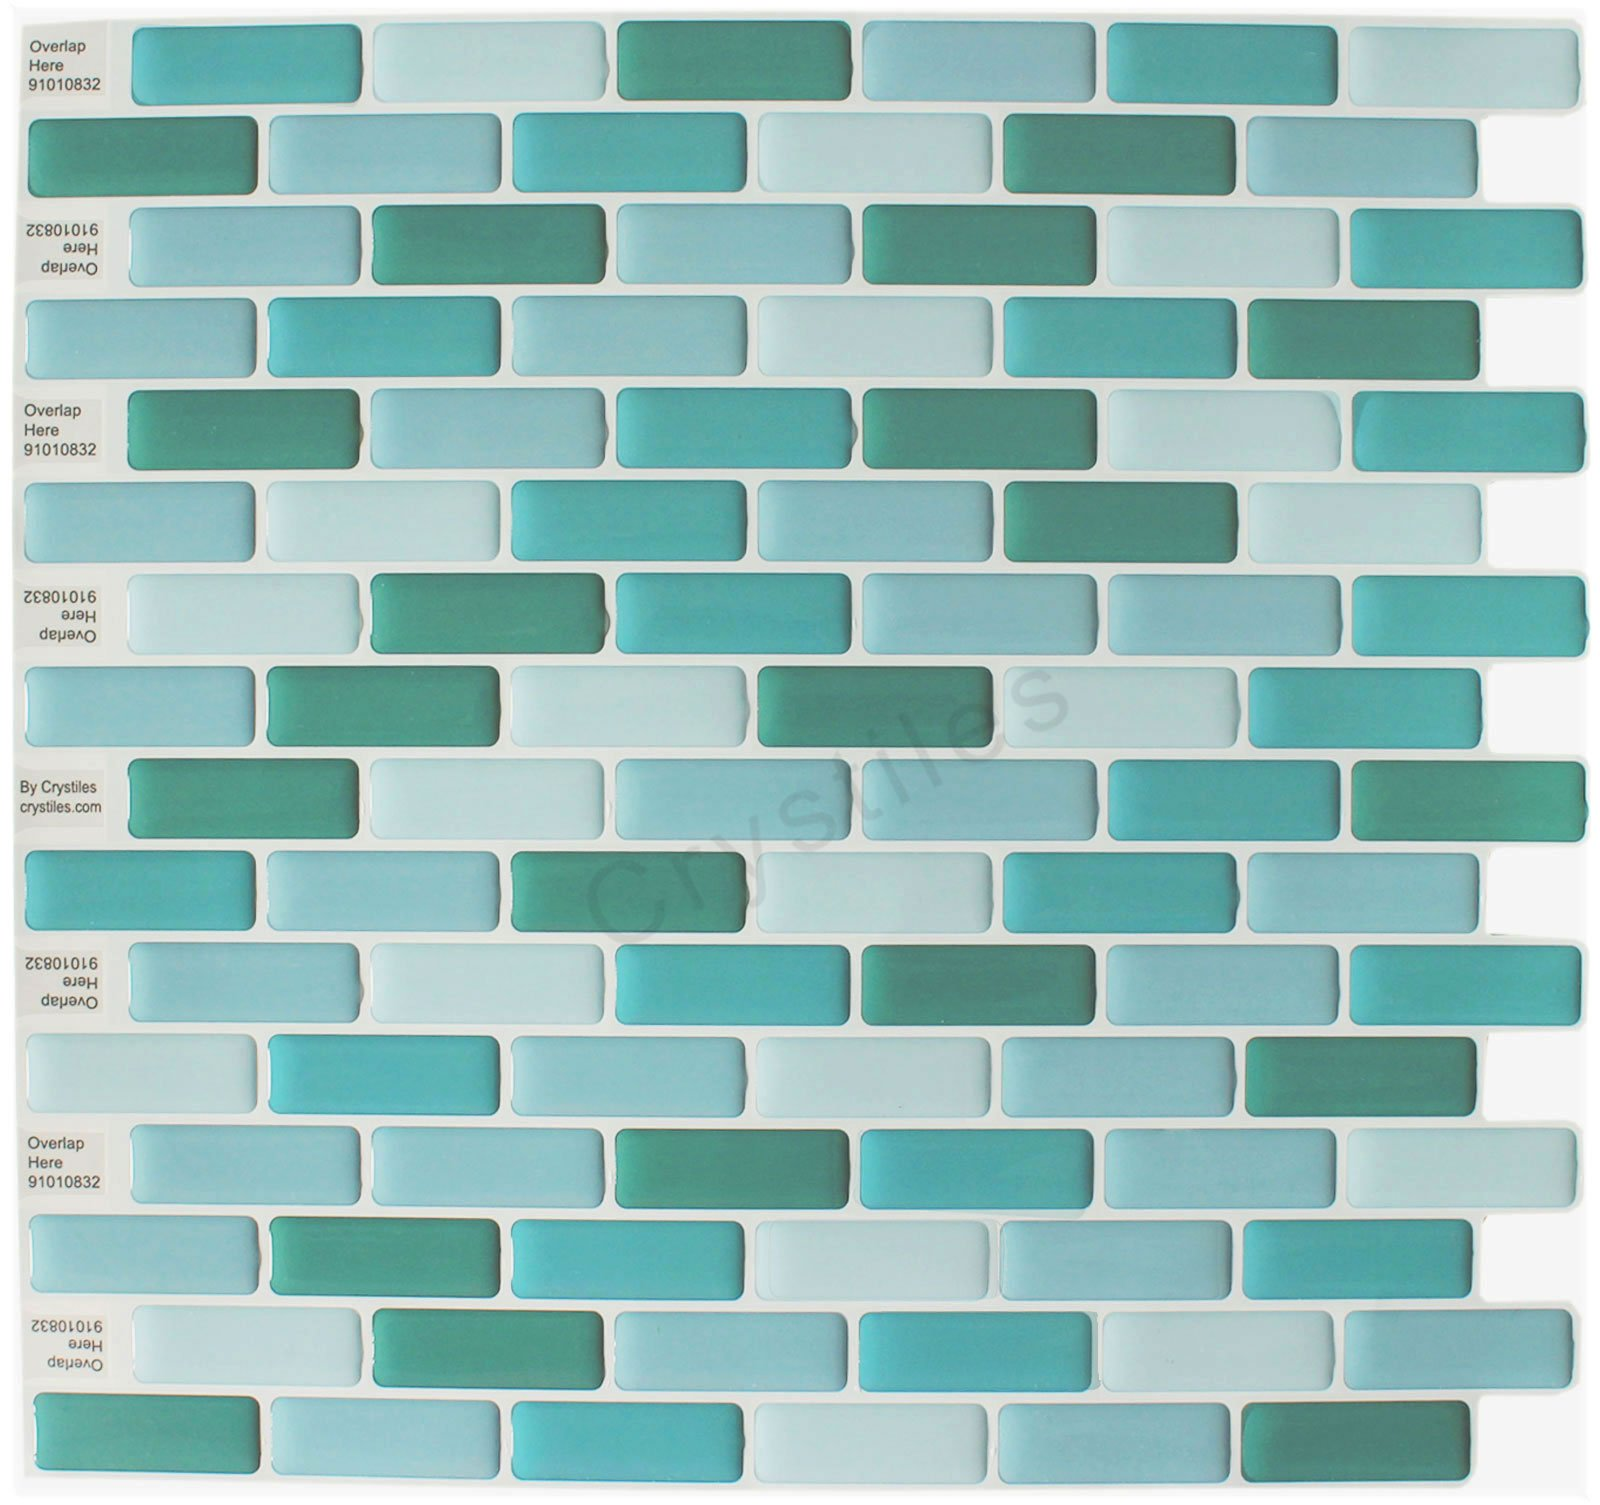 Crystiles Peel and Stick Self-Adhesive DIY Backsplash Stick-on Vinyl Wall Tiles for Kitchen and Bathroom Décor Projects, Item# 91010832, 10'' X 10'' Each, 6 Sheets Pack by Crystiles